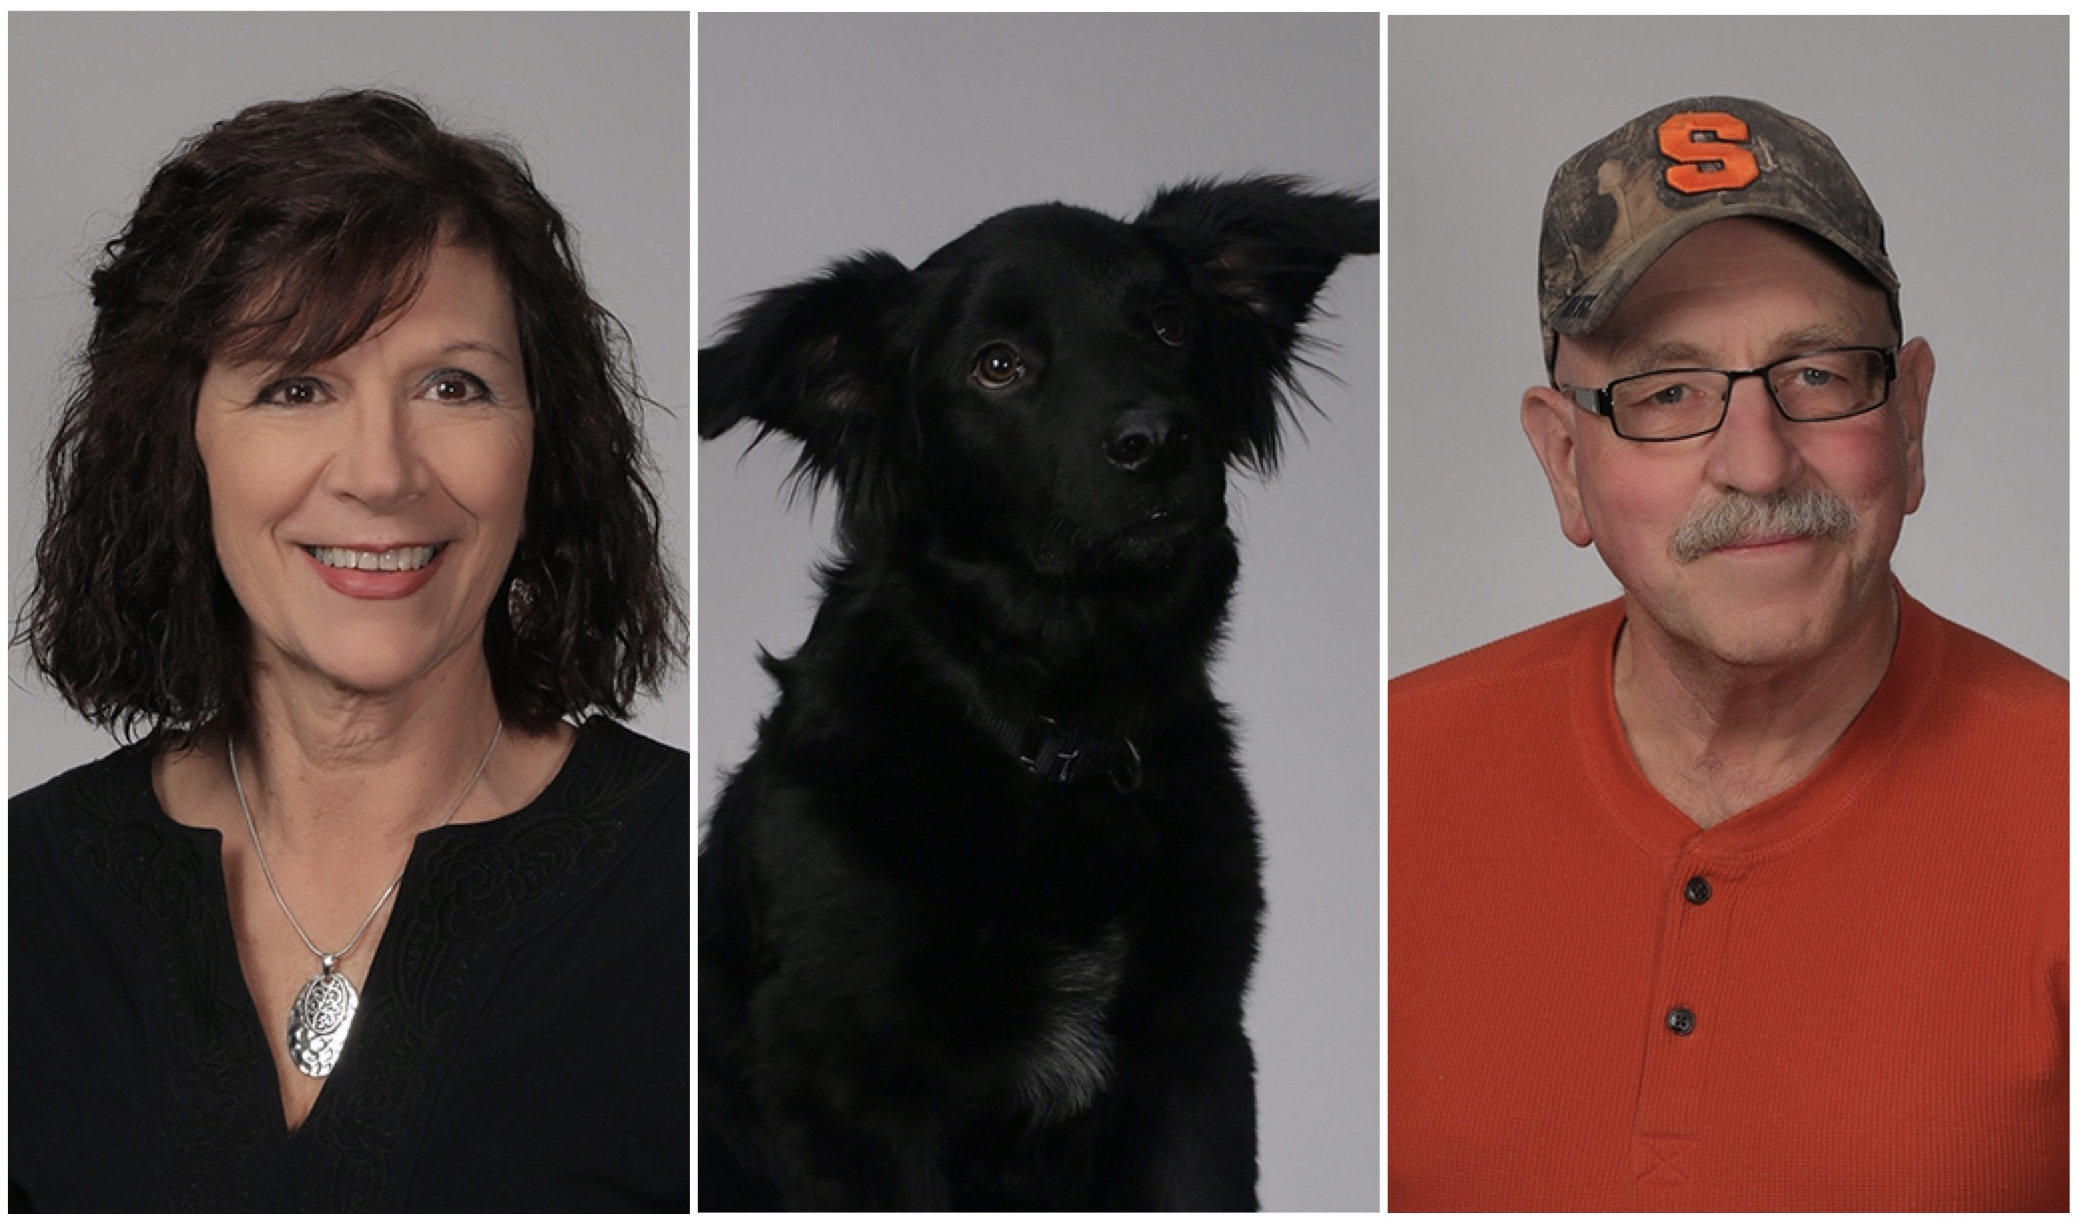 Our amazing chefs, Susan and Allen Blinebry, and their dog, Koda